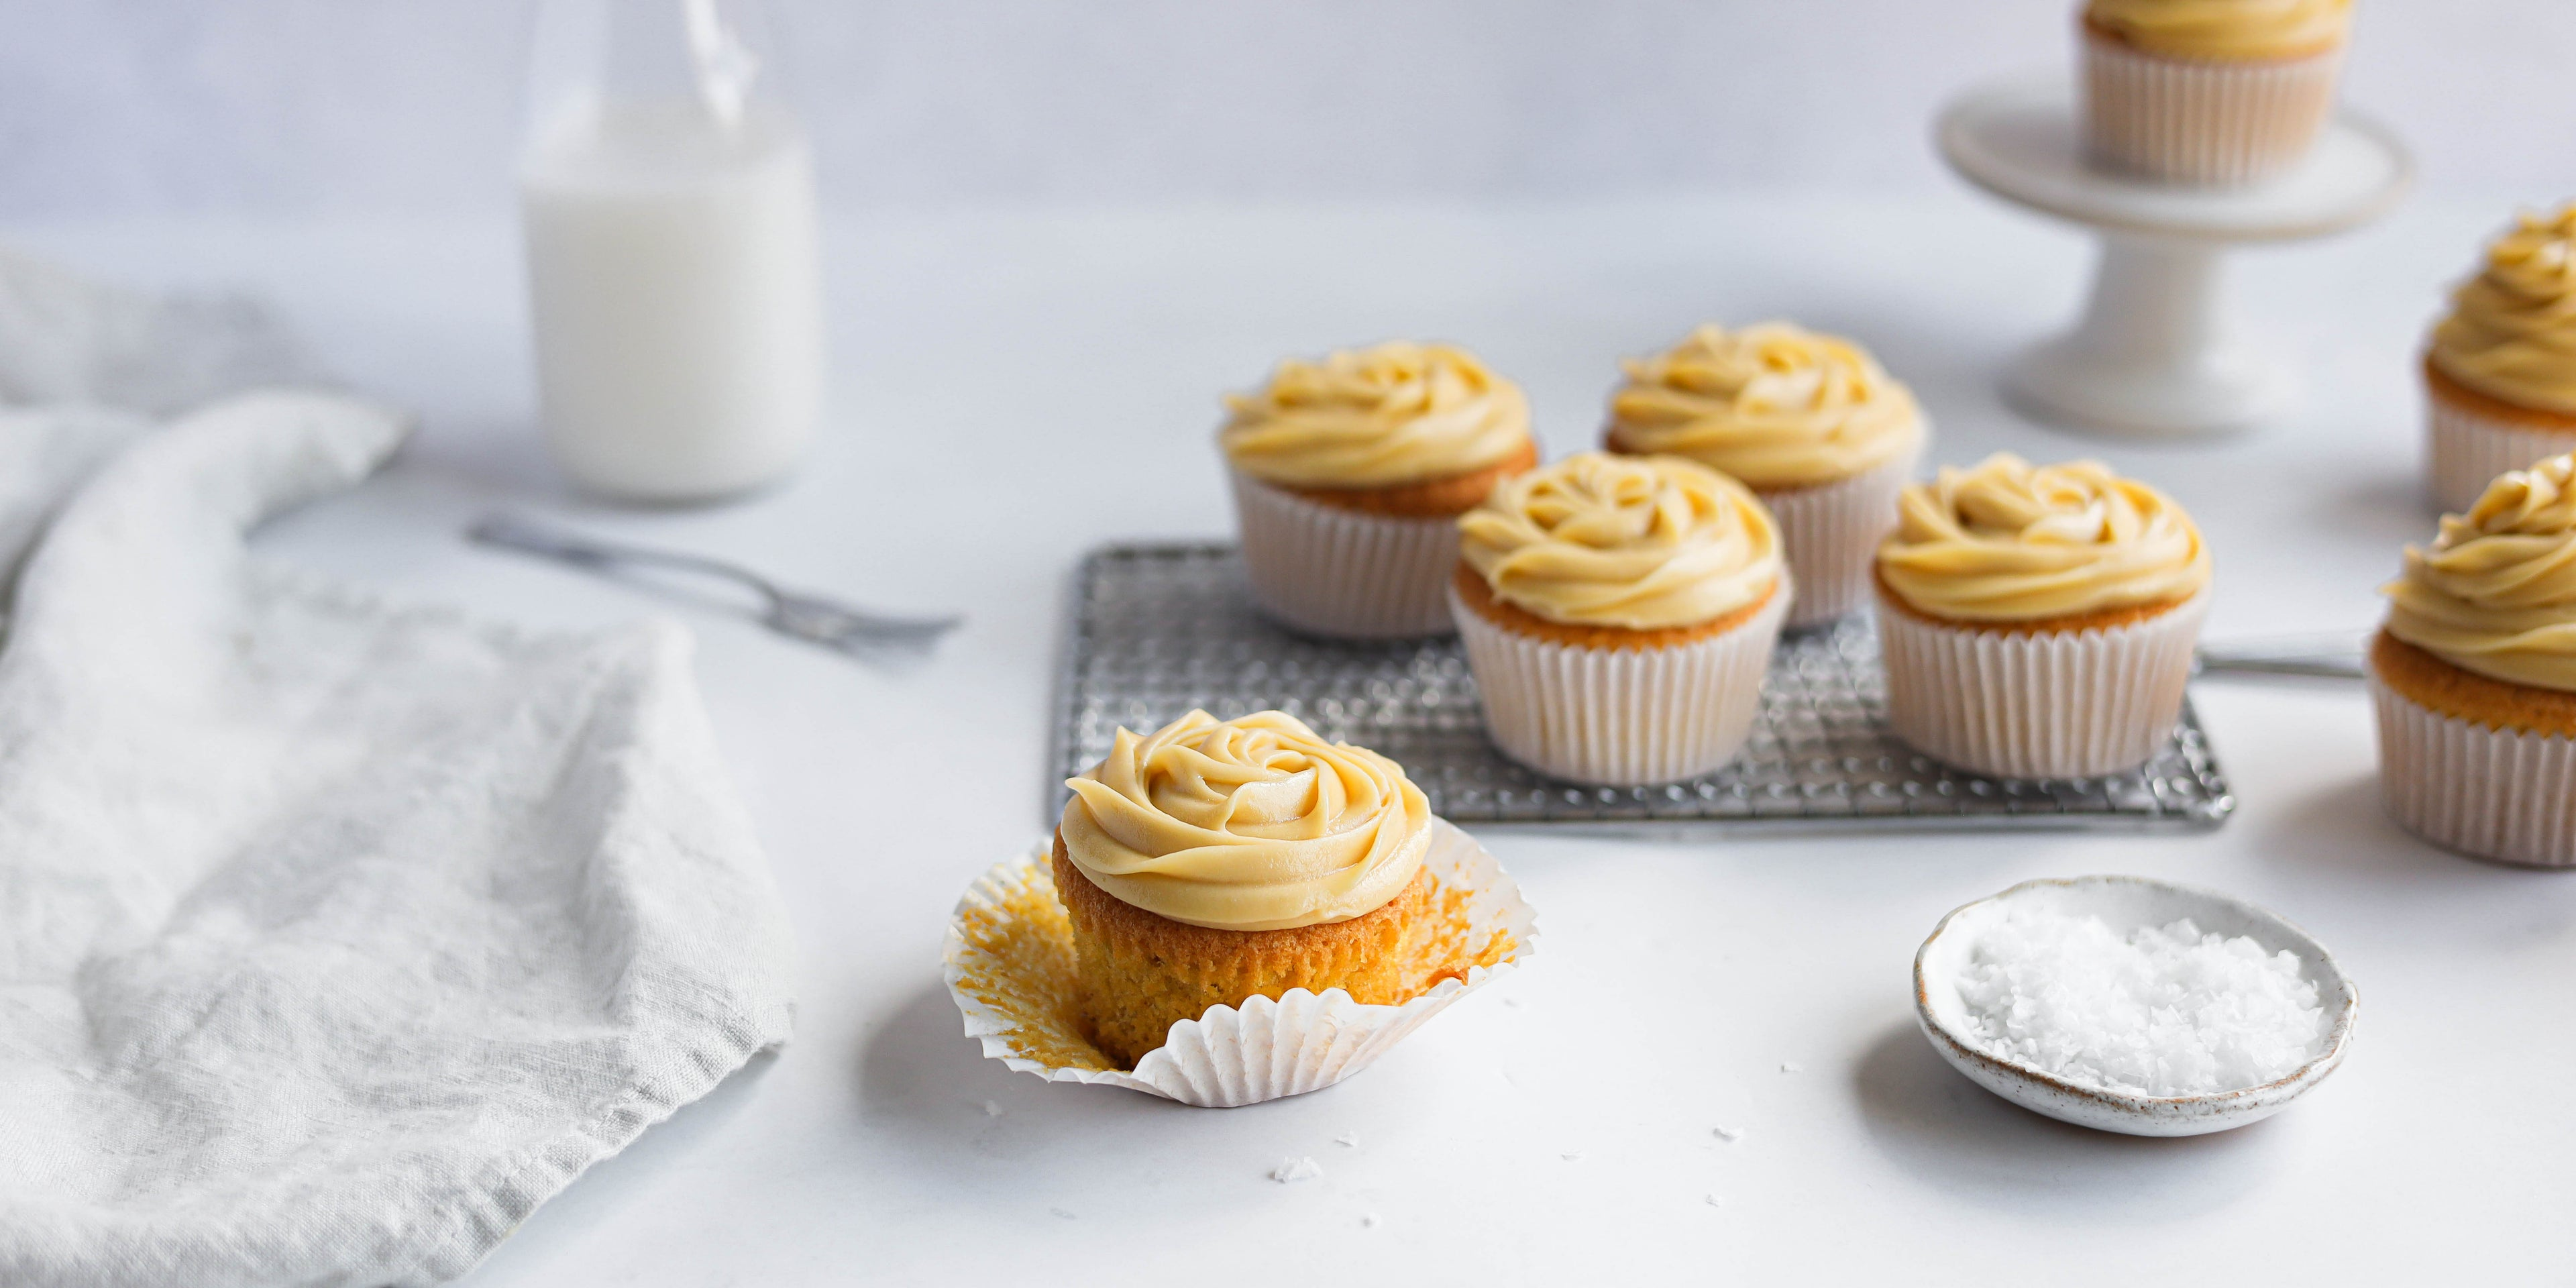 Salted Caramel Cupcakes on a wire rack, side dish of rock salt and white cloth with fork ready to serve